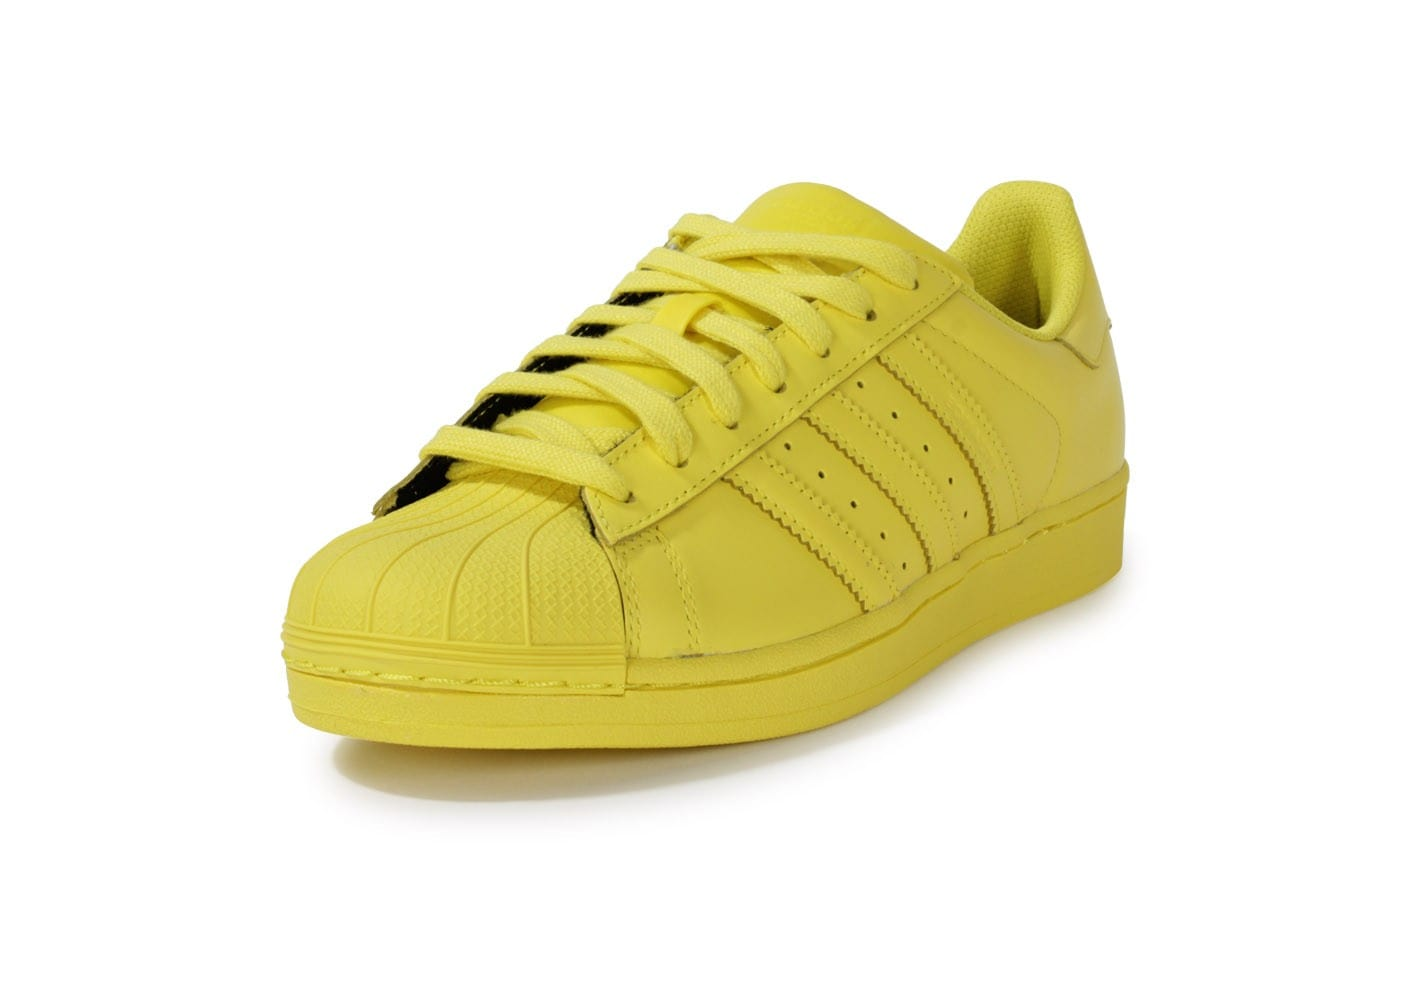 the best attitude 62edb 0058f ... Chaussures adidas Superstar Supercolor Jaune vue avant ...